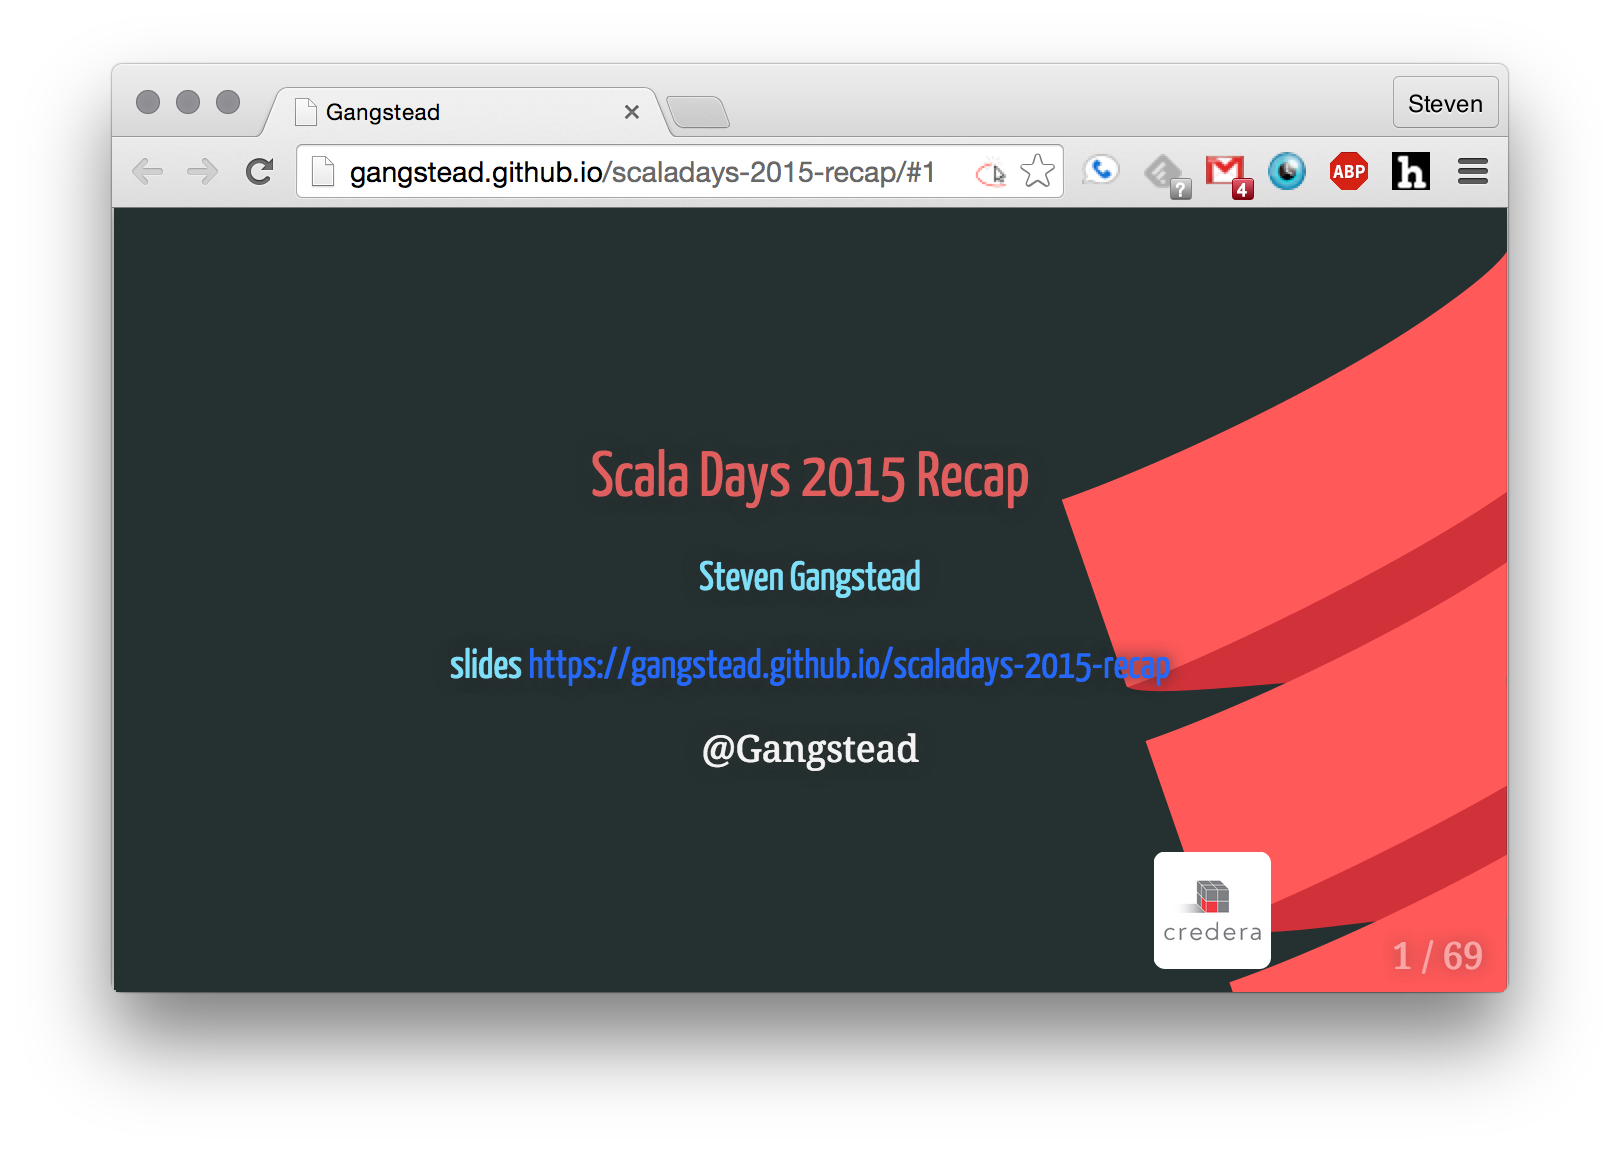 scala-days-2015-recap